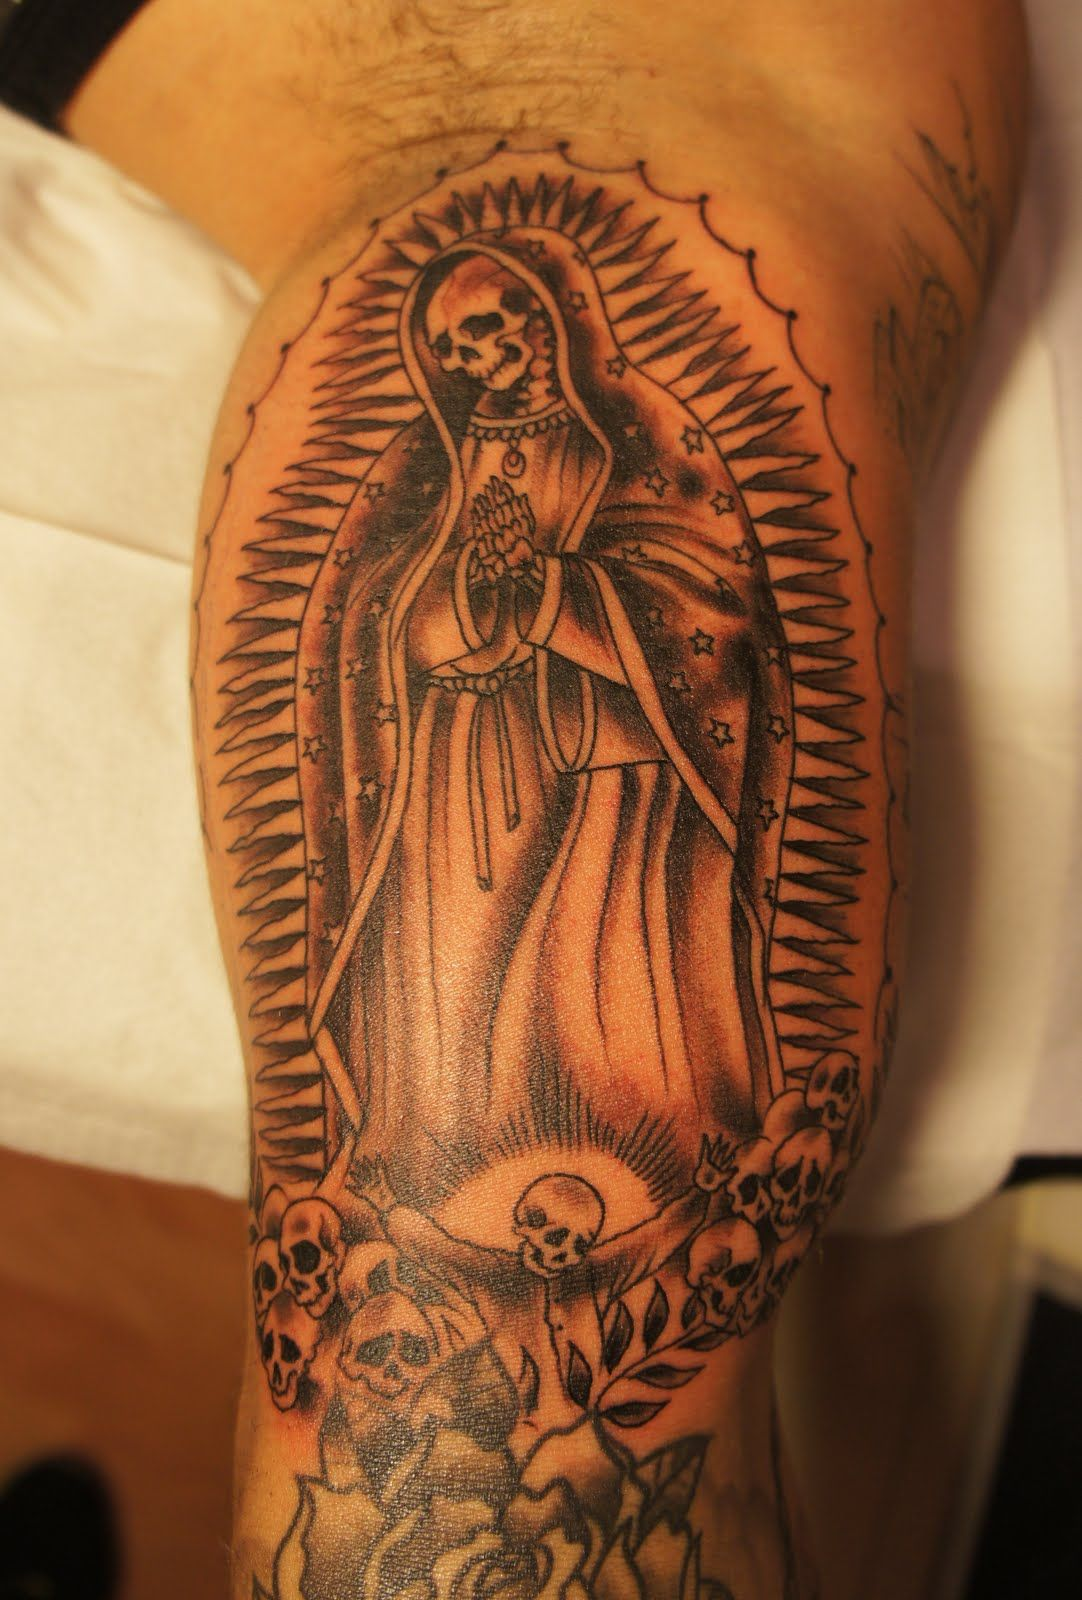 Skull Virgin Mary Tattoo Tattoo Ideas Inspiration Pinterest